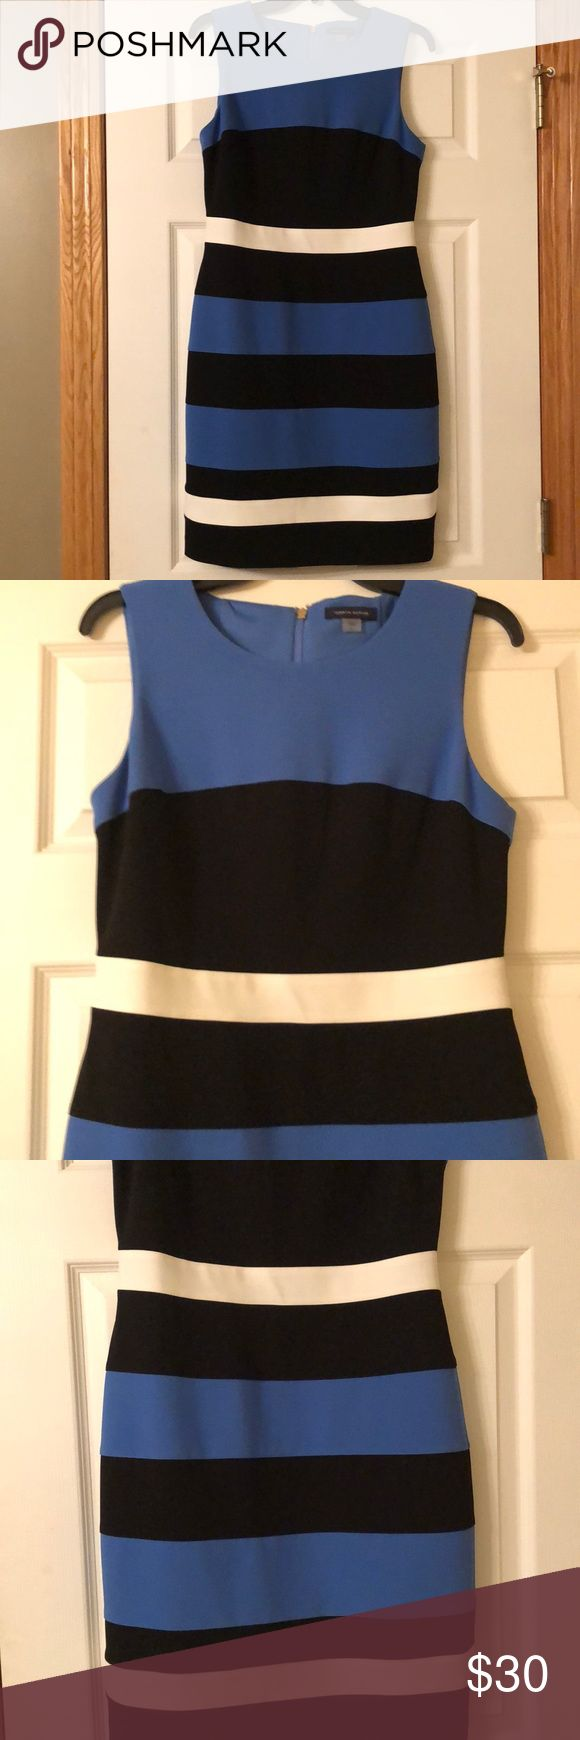 Tommy Hilfiger sleeveless Black/Blue Dress - 8 Tommy Hilfiger striped, fitted dress. Dress is a beautiful blue, black with two white accent stripes. Worn only once. Looks wonderful with black heels or could layer for winter with black boots and a black sweater. Tommy Hilfiger Dresses Mini